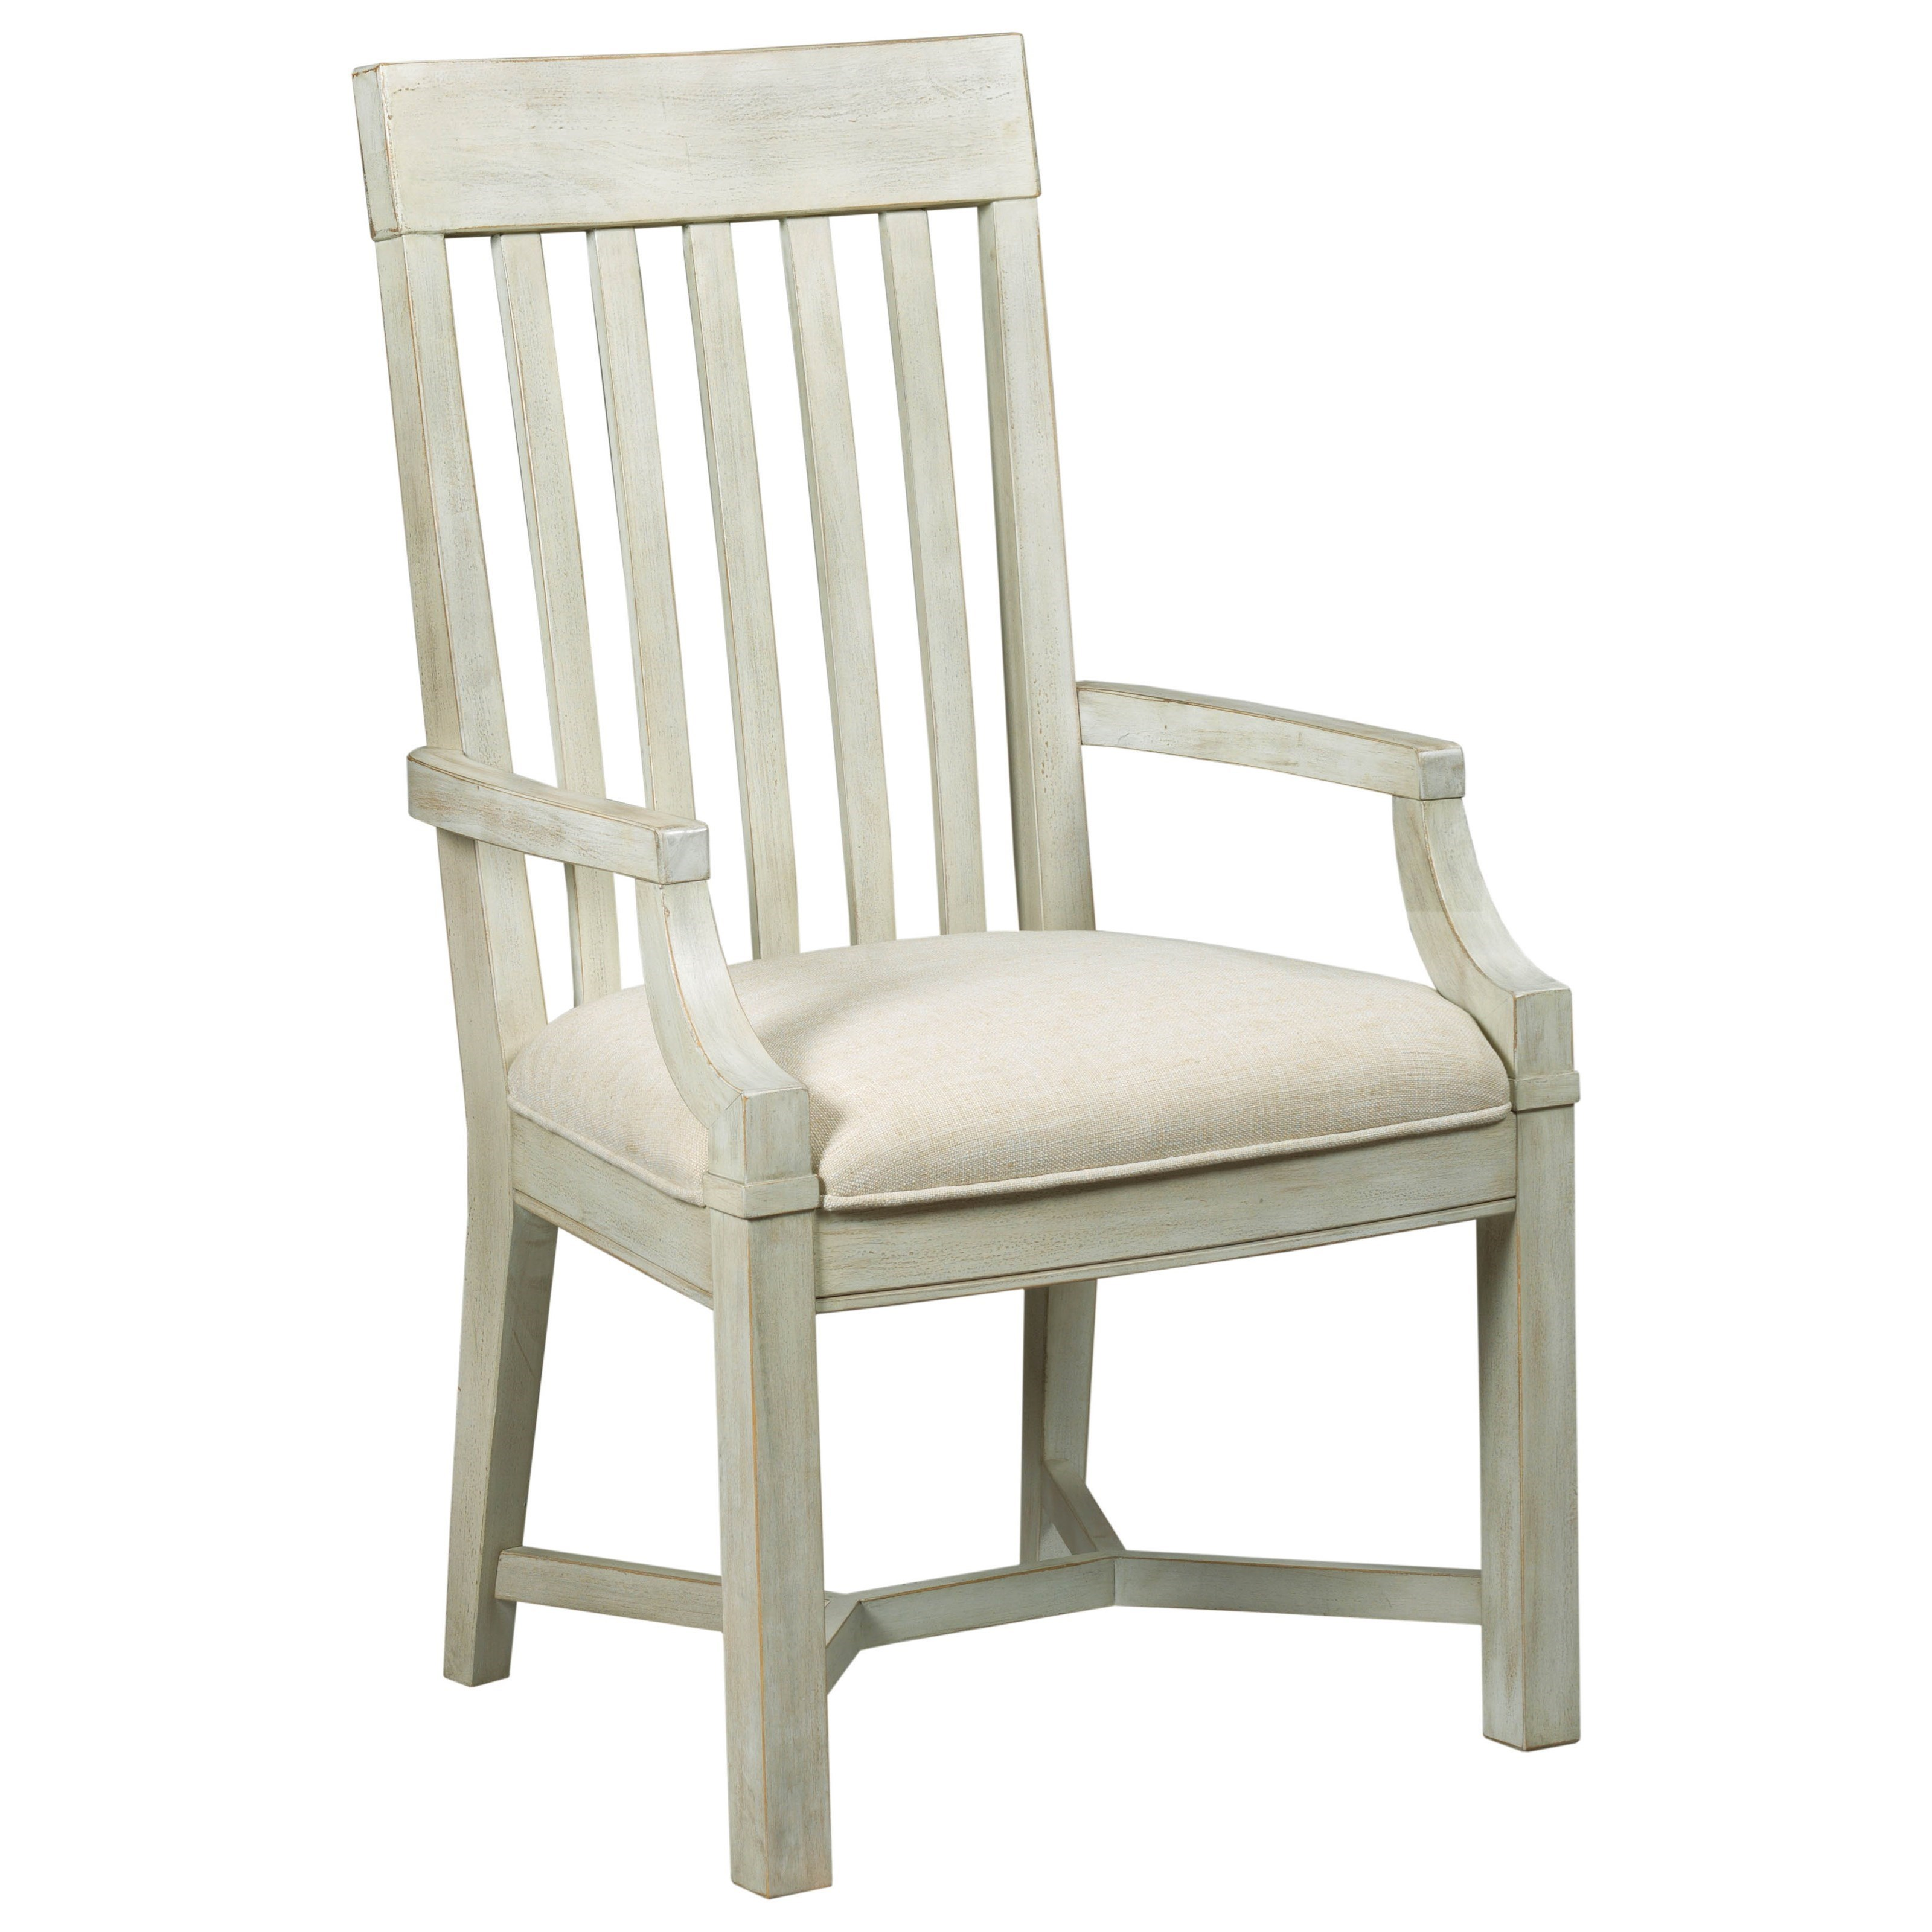 Litchfield Arm Chair by American Drew at Johnny Janosik